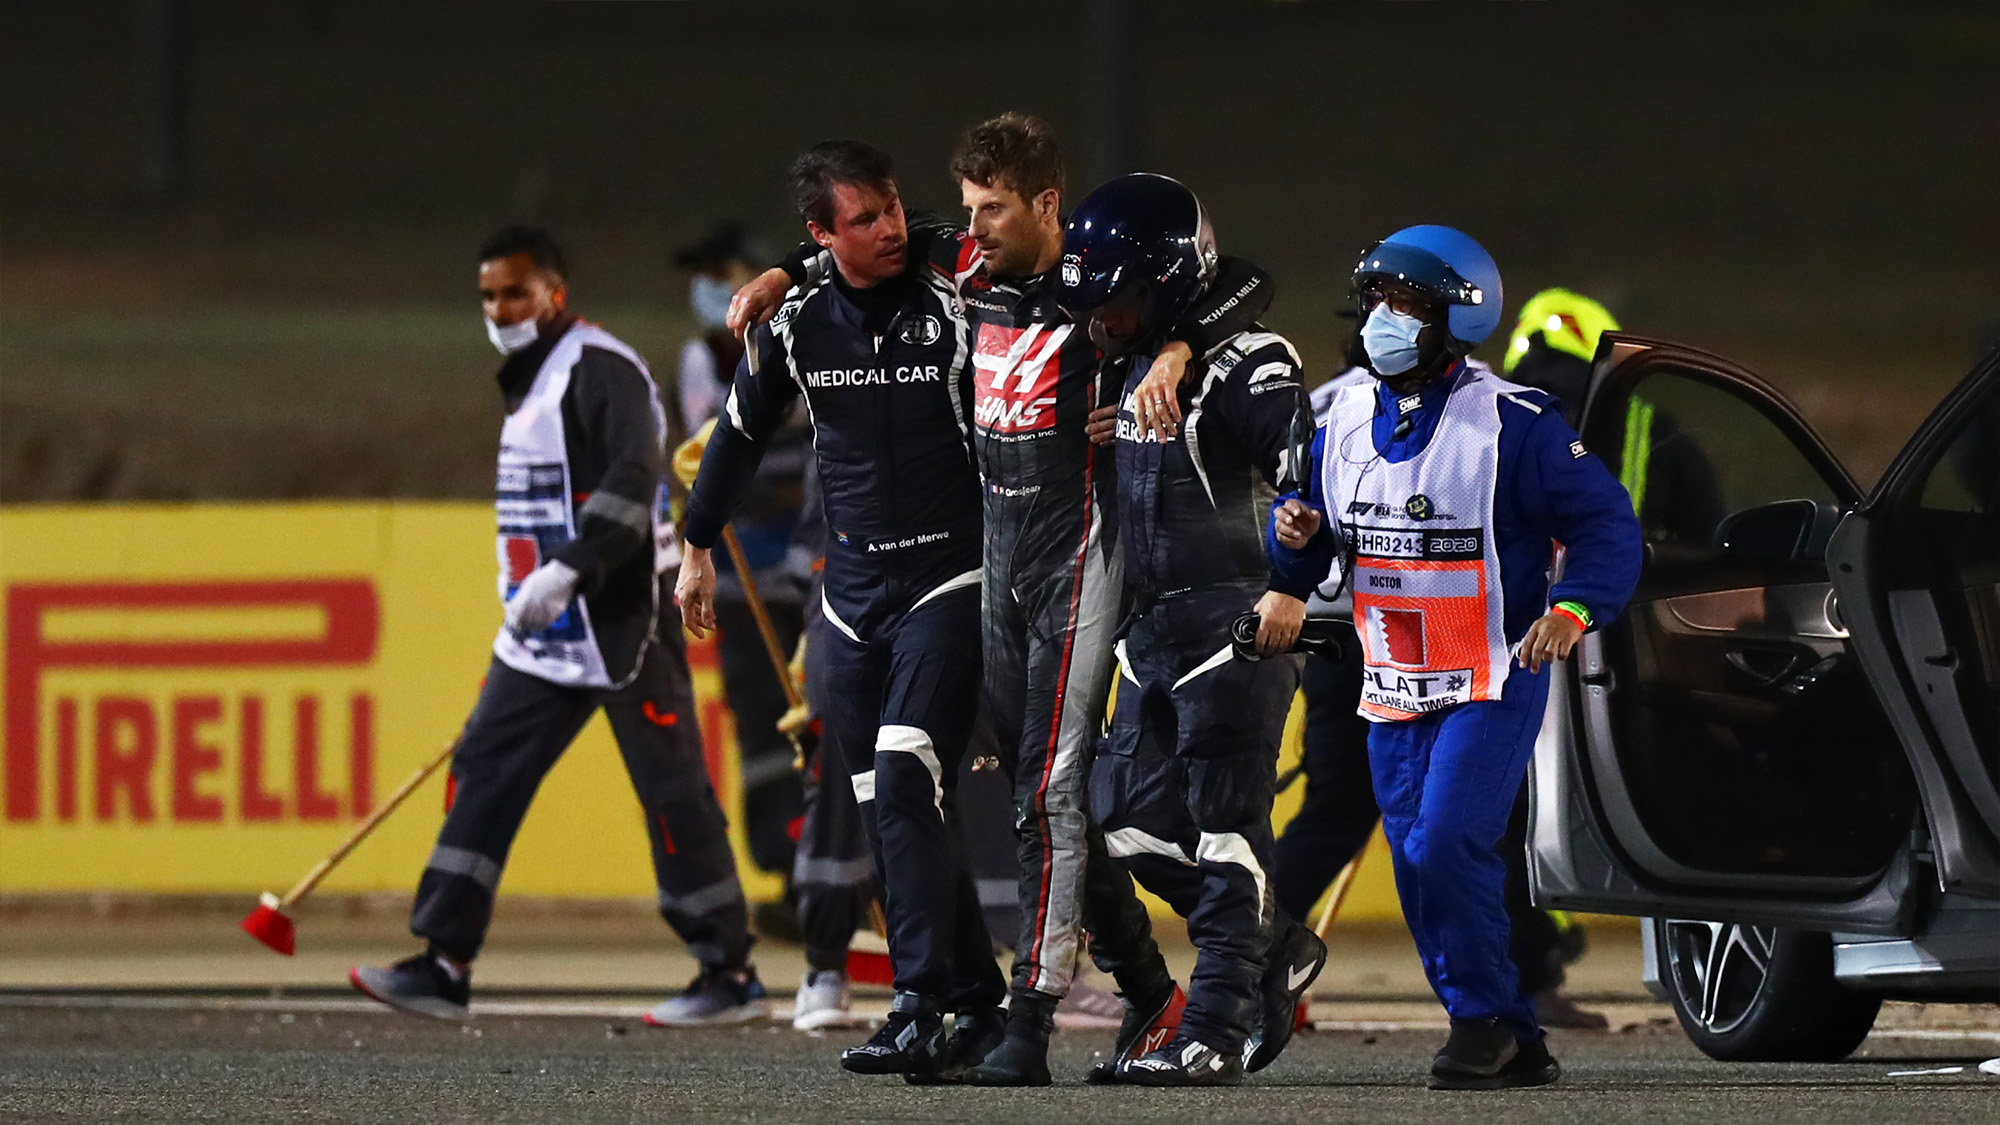 Romain Grosjean is lead away from the burnt wreckage of his car after crashing at the 2020 F1 Bahrain Grand Prix